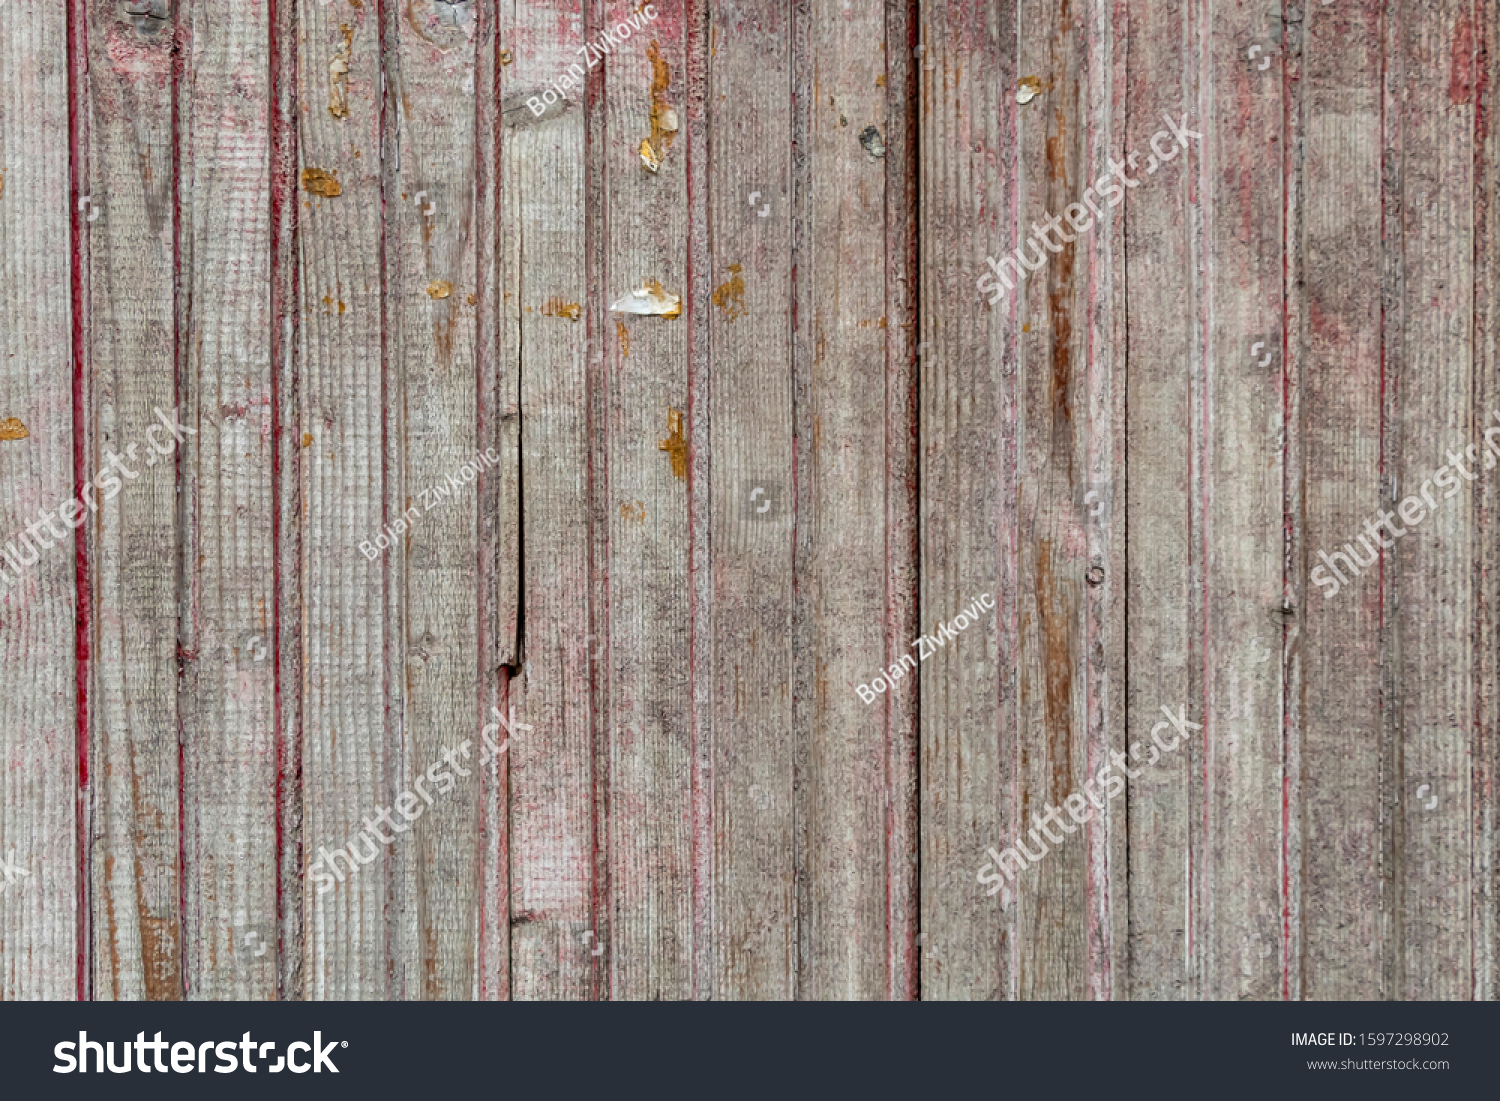 Old Weathered Wooden Planks Texture #1597298902